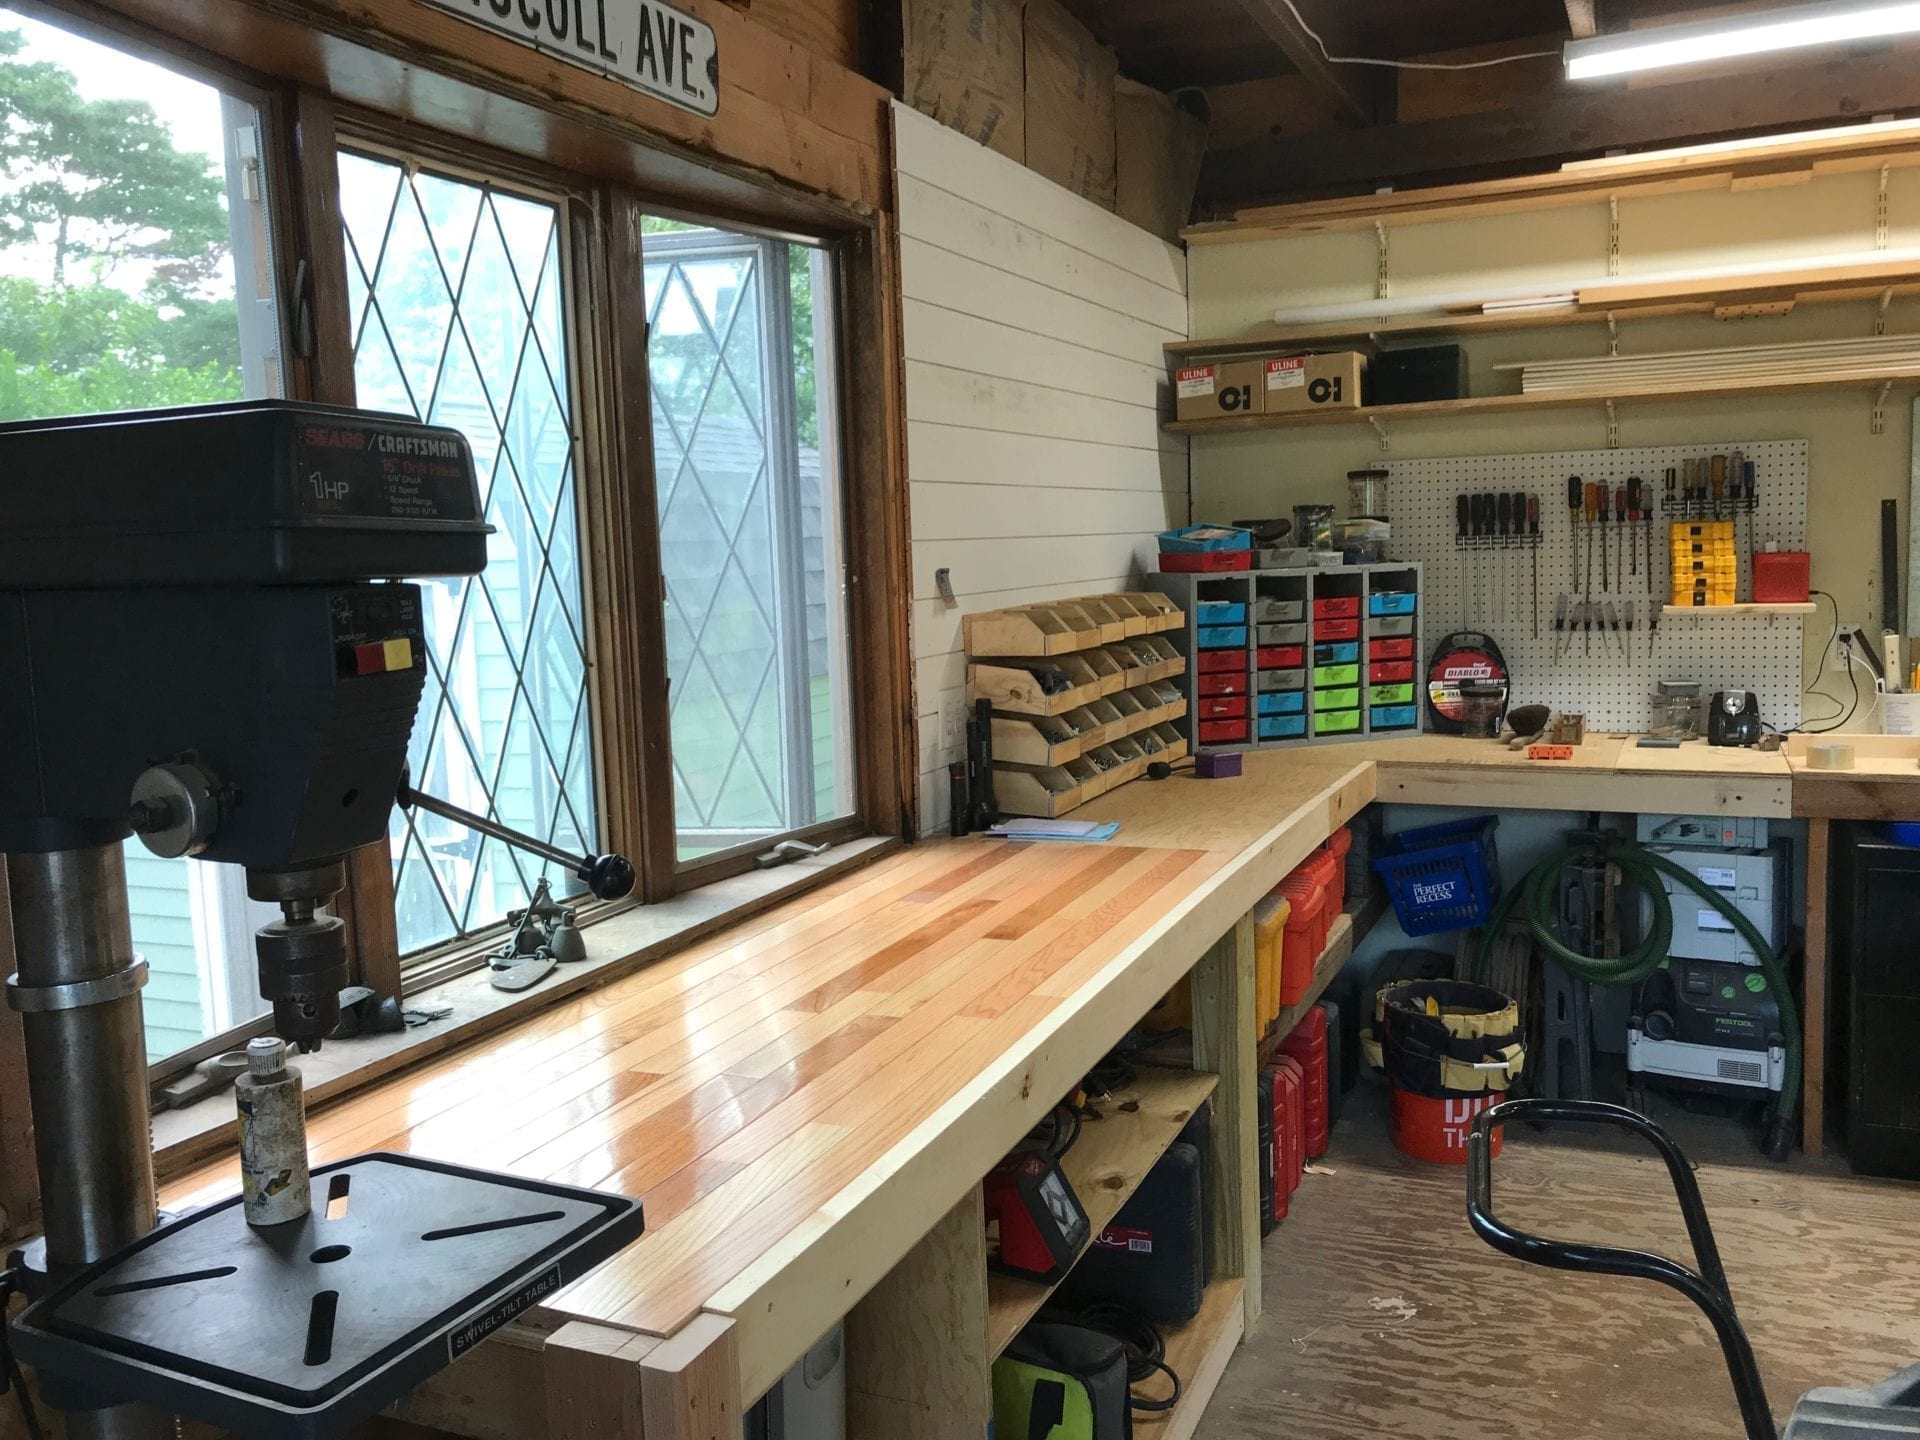 new workbench that is better organized